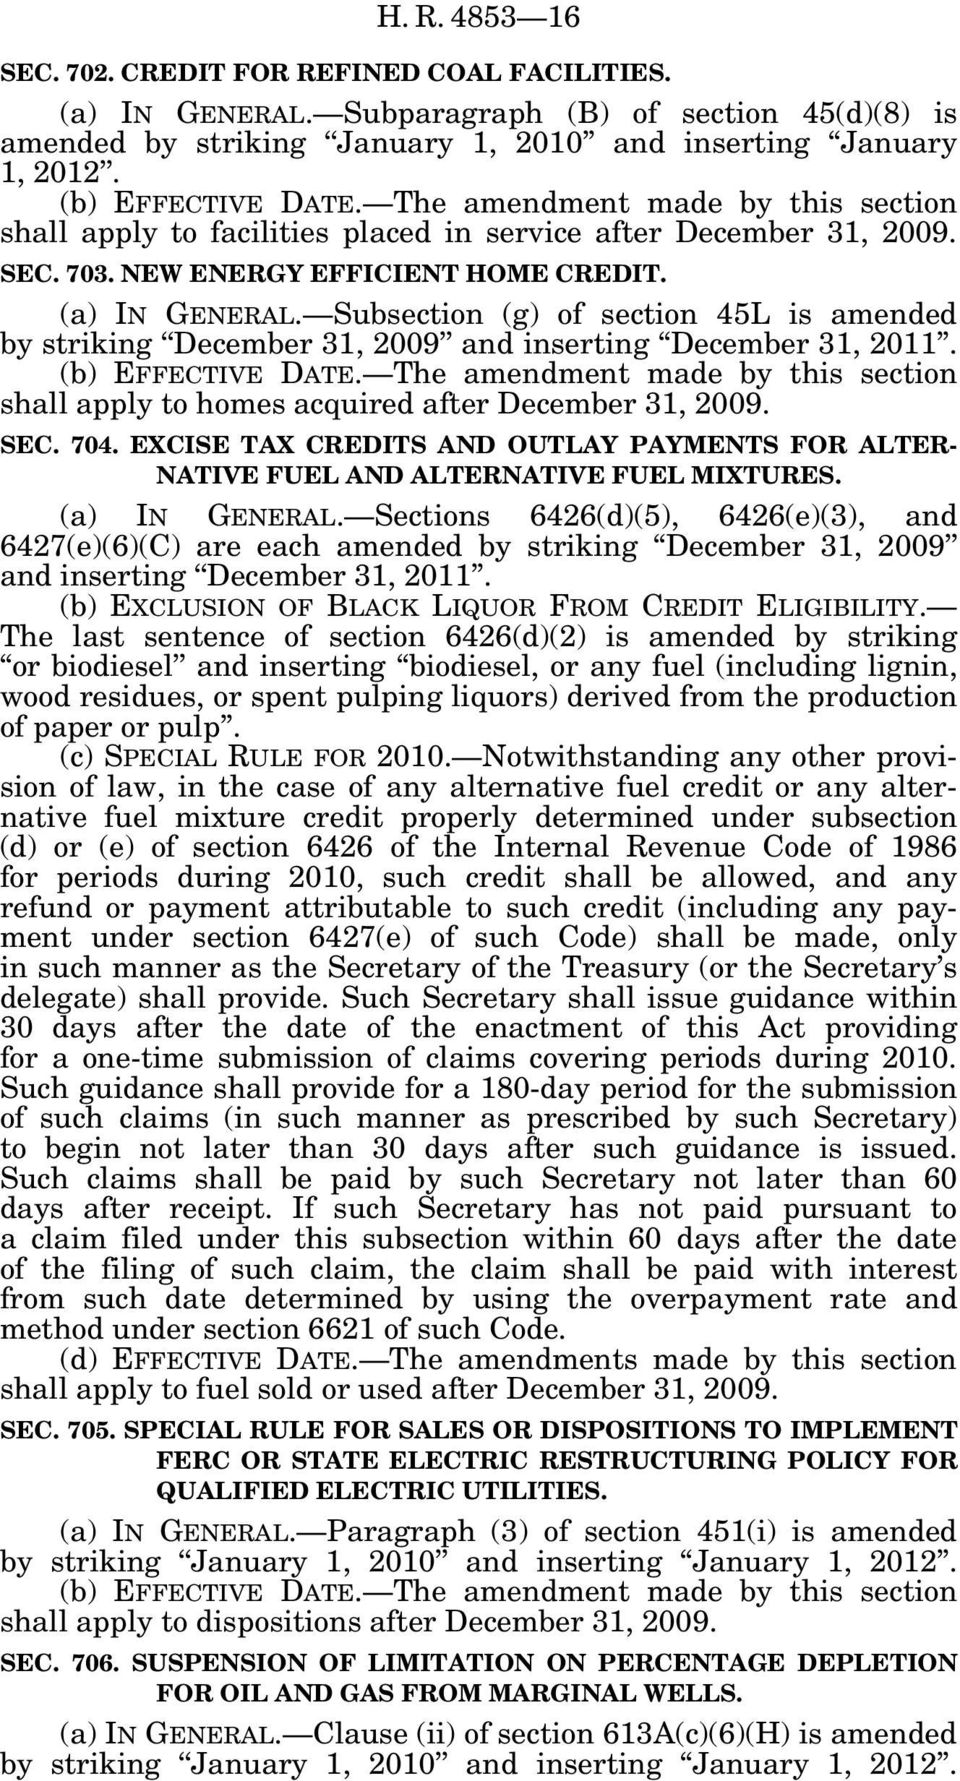 Subsection (g) of section 45L is amended shall apply to homes acquired after December 31, 2009. SEC. 704. EXCISE TAX CREDITS AND OUTLAY PAYMENTS FOR ALTER- NATIVE FUEL AND ALTERNATIVE FUEL MIXTURES.